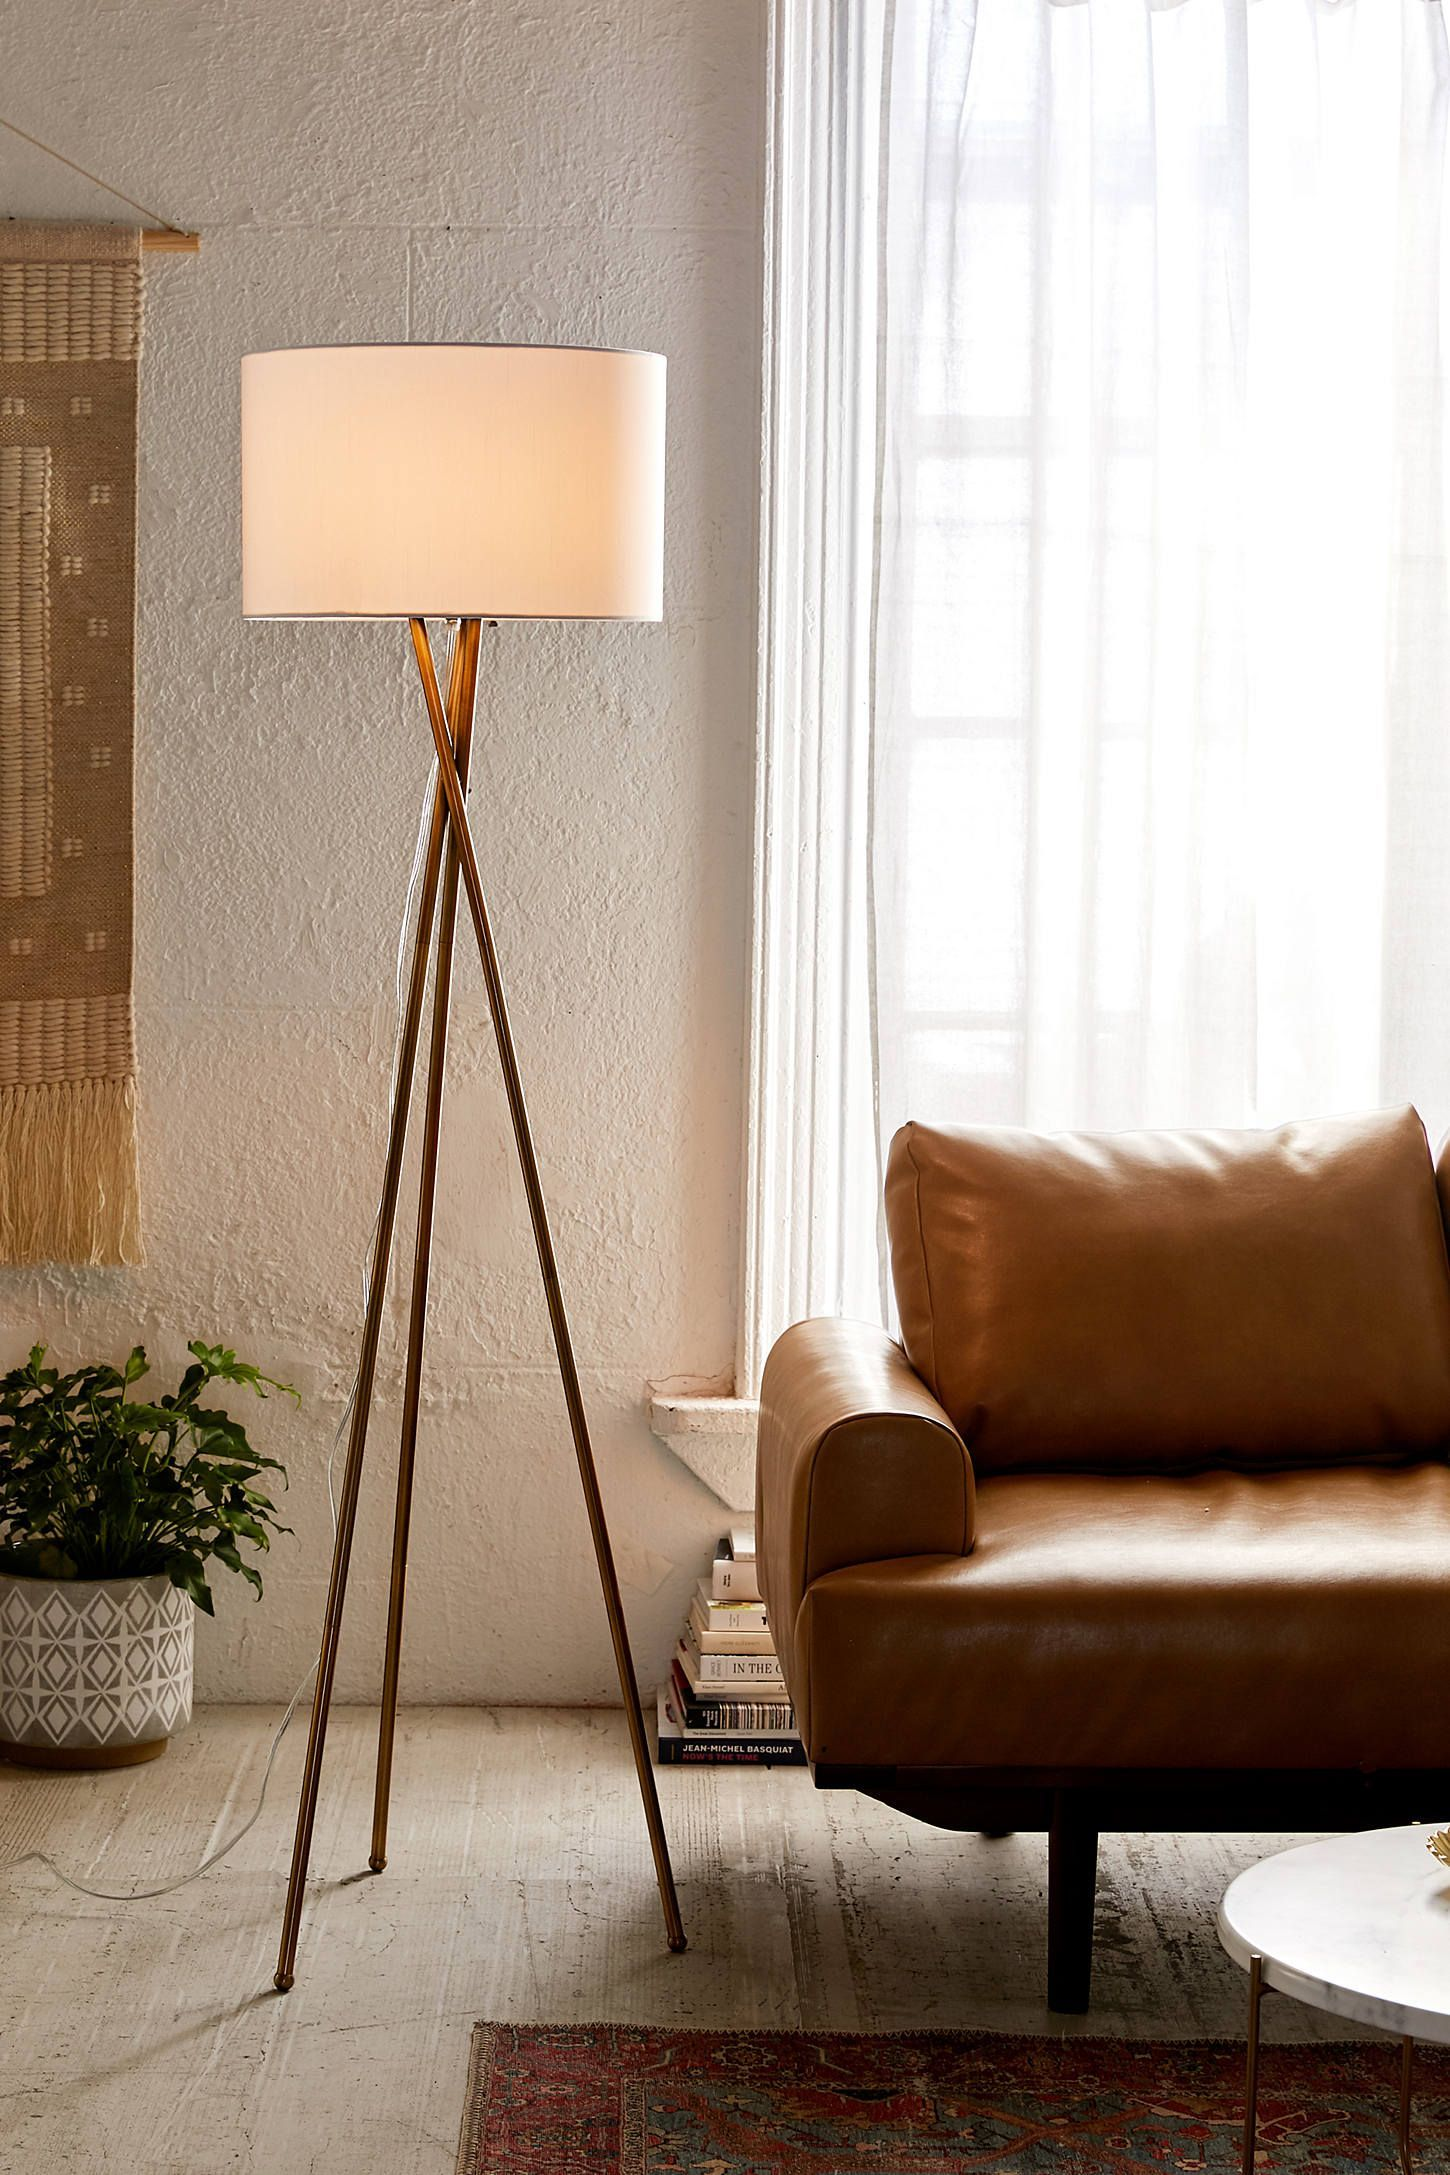 Living Room Accessories Latest Drawing Room Interiors Home Accessories For Living Room Floor Lamps Living Room Tripod Floor Lamps Lamps Living Room